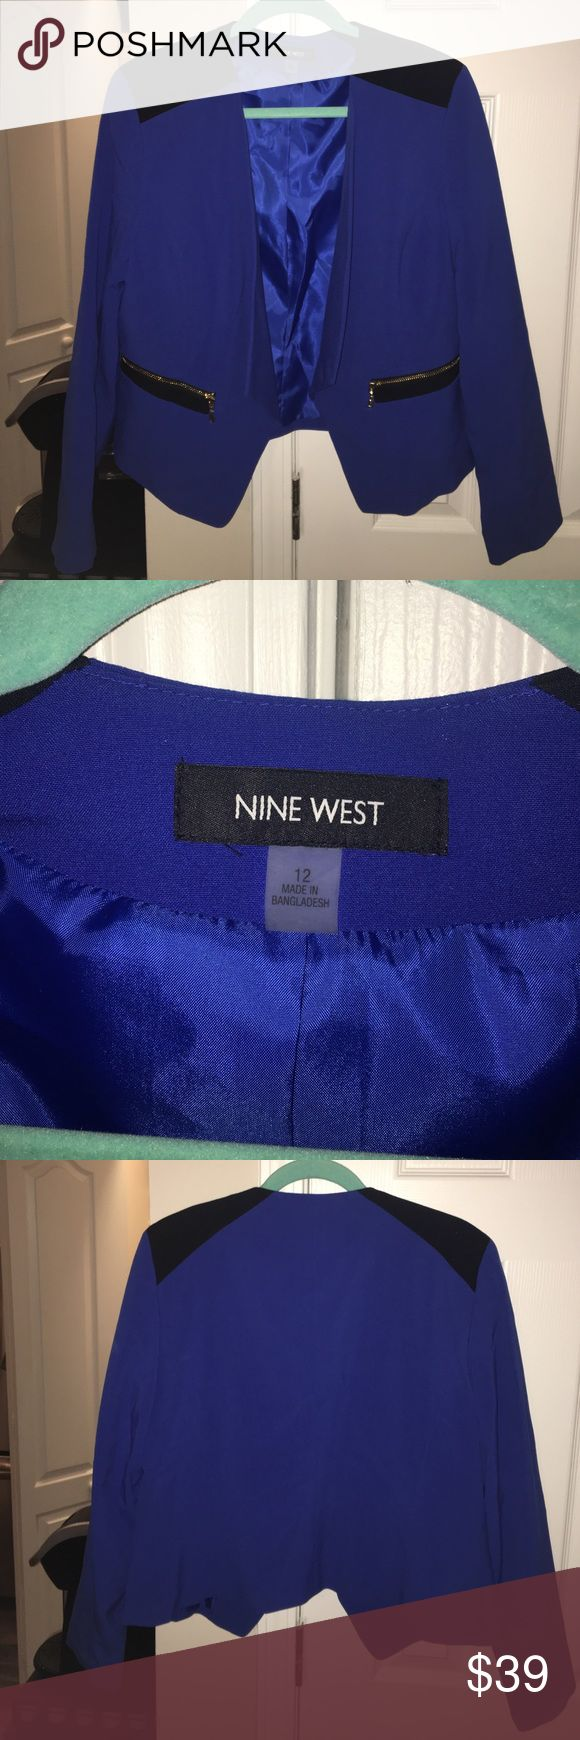 Nine West royal blue blazer with gold zippers! This Nine West blazer was never worn and is in perfect condition! The gold zippers add a trendy touch. You can definitely dress this one up or down! Nine West Jackets & Coats Blazers